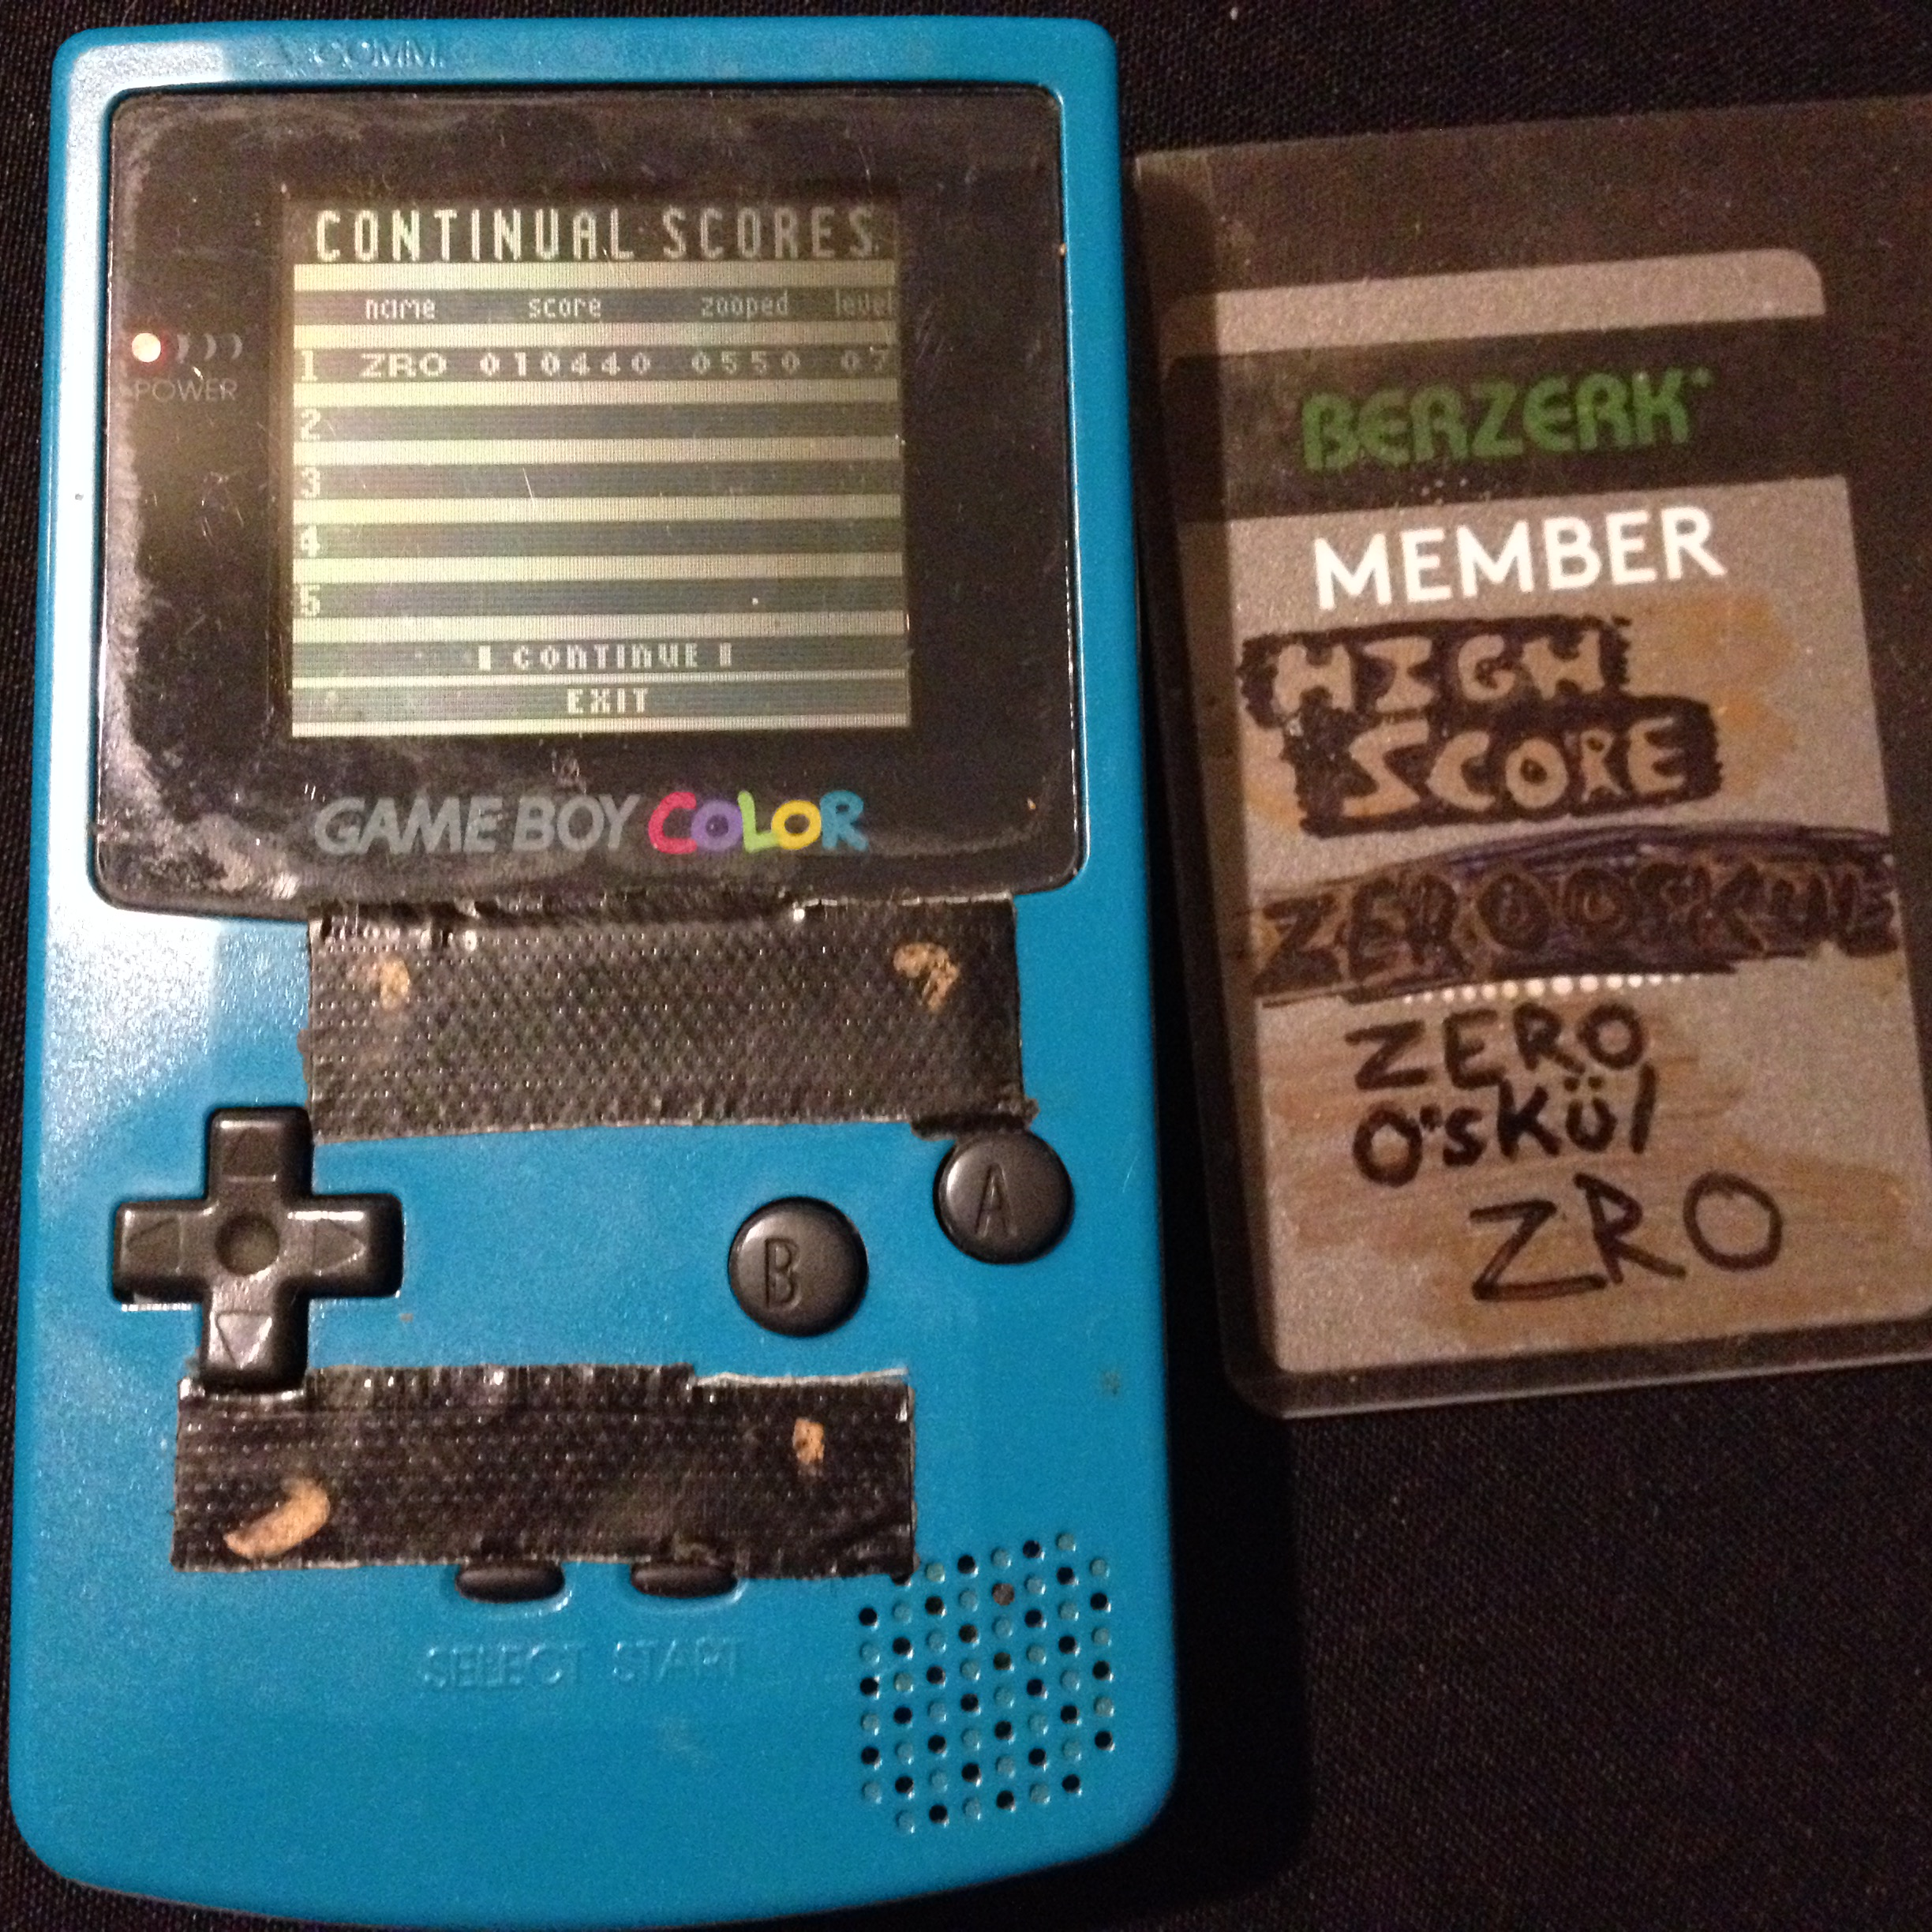 zerooskul: Zoop [Continual Mode] (Game Boy) 10,440 points on 2019-08-07 22:23:18